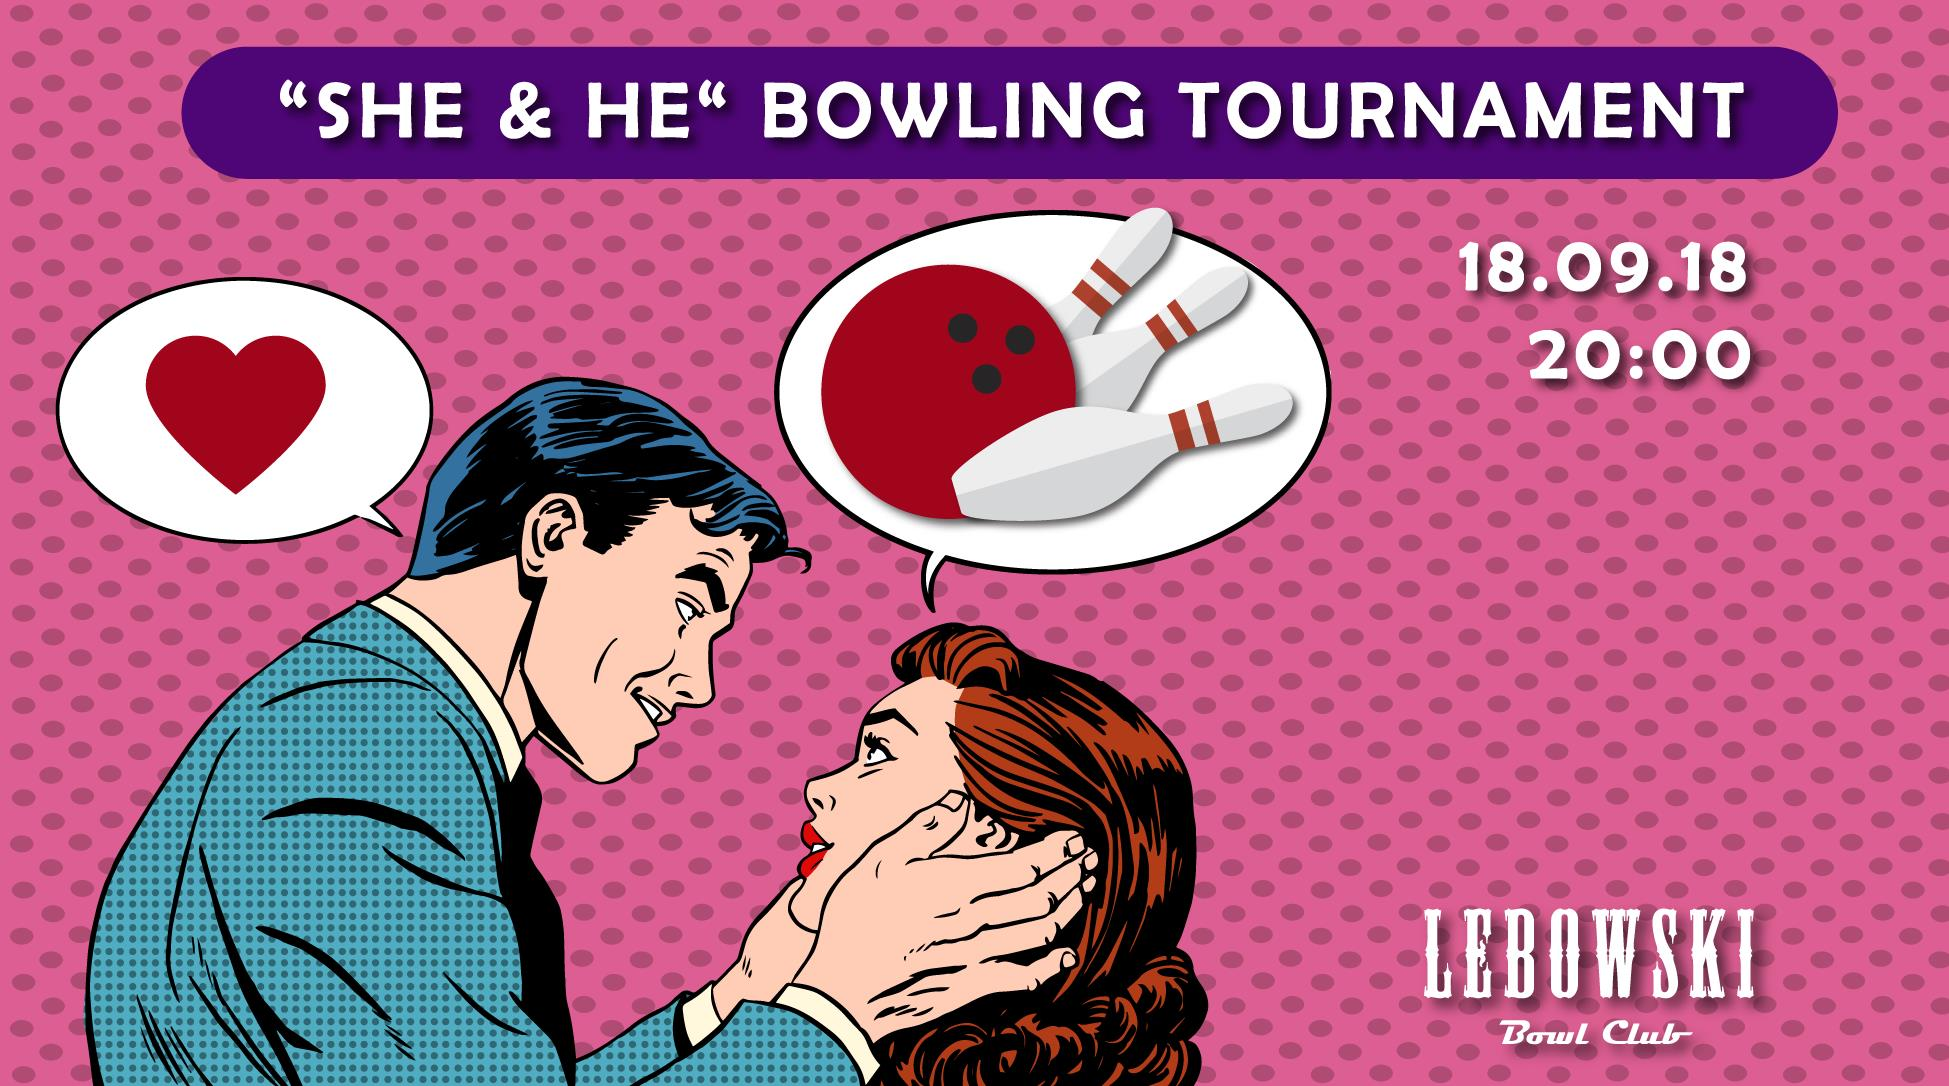 Bowling Tournament for Couples - Round VII photo